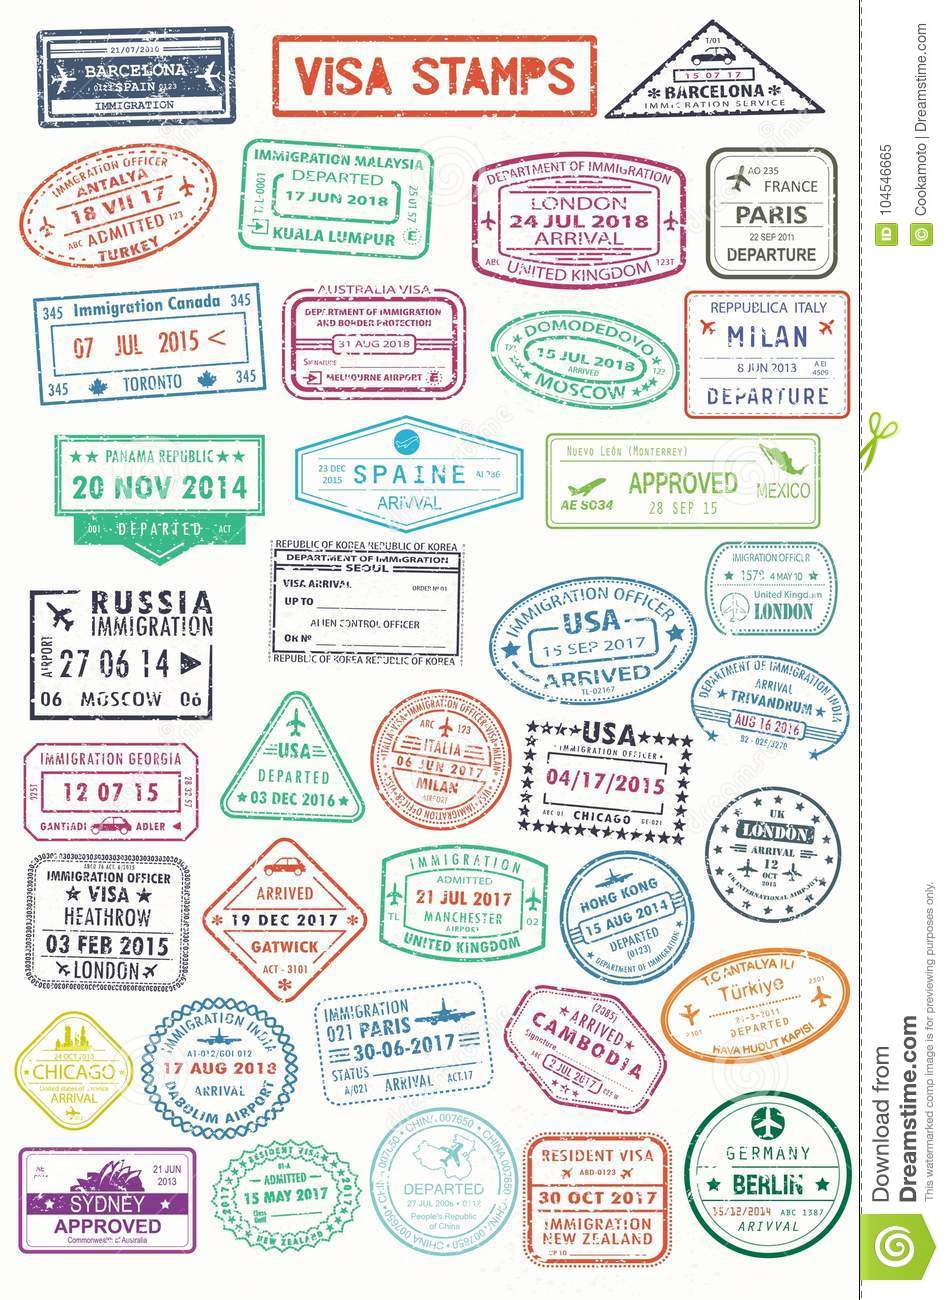 Passport stamps or visa pages for traveling abroad stock vector for visa or passport travel and tourism document germany and india russia and spain france and turkey australia and uk panama and malaysia italy thecheapjerseys Image collections